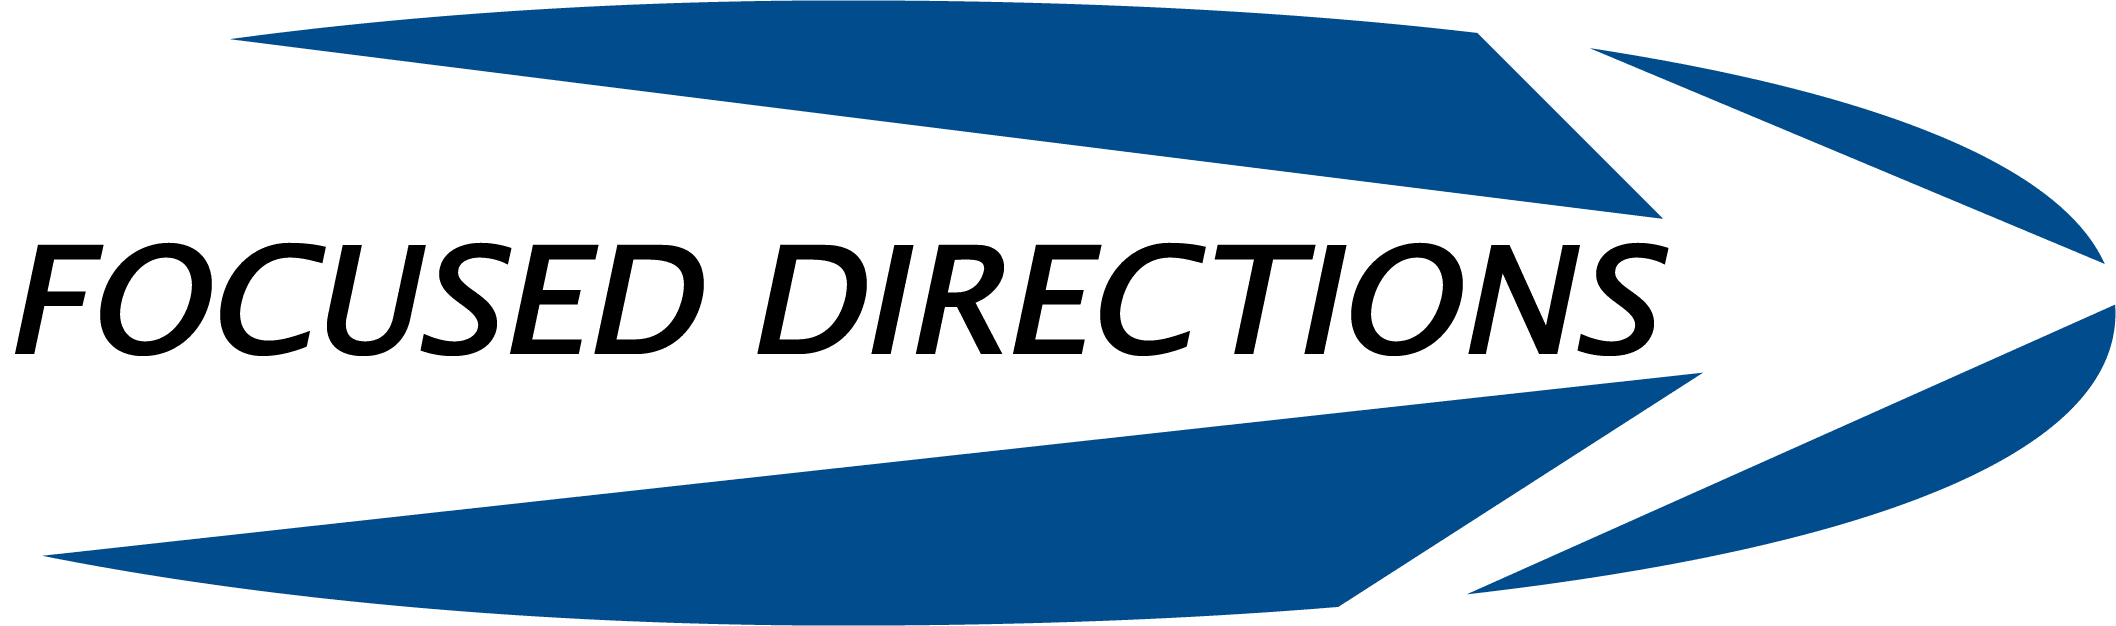 focused directions logo